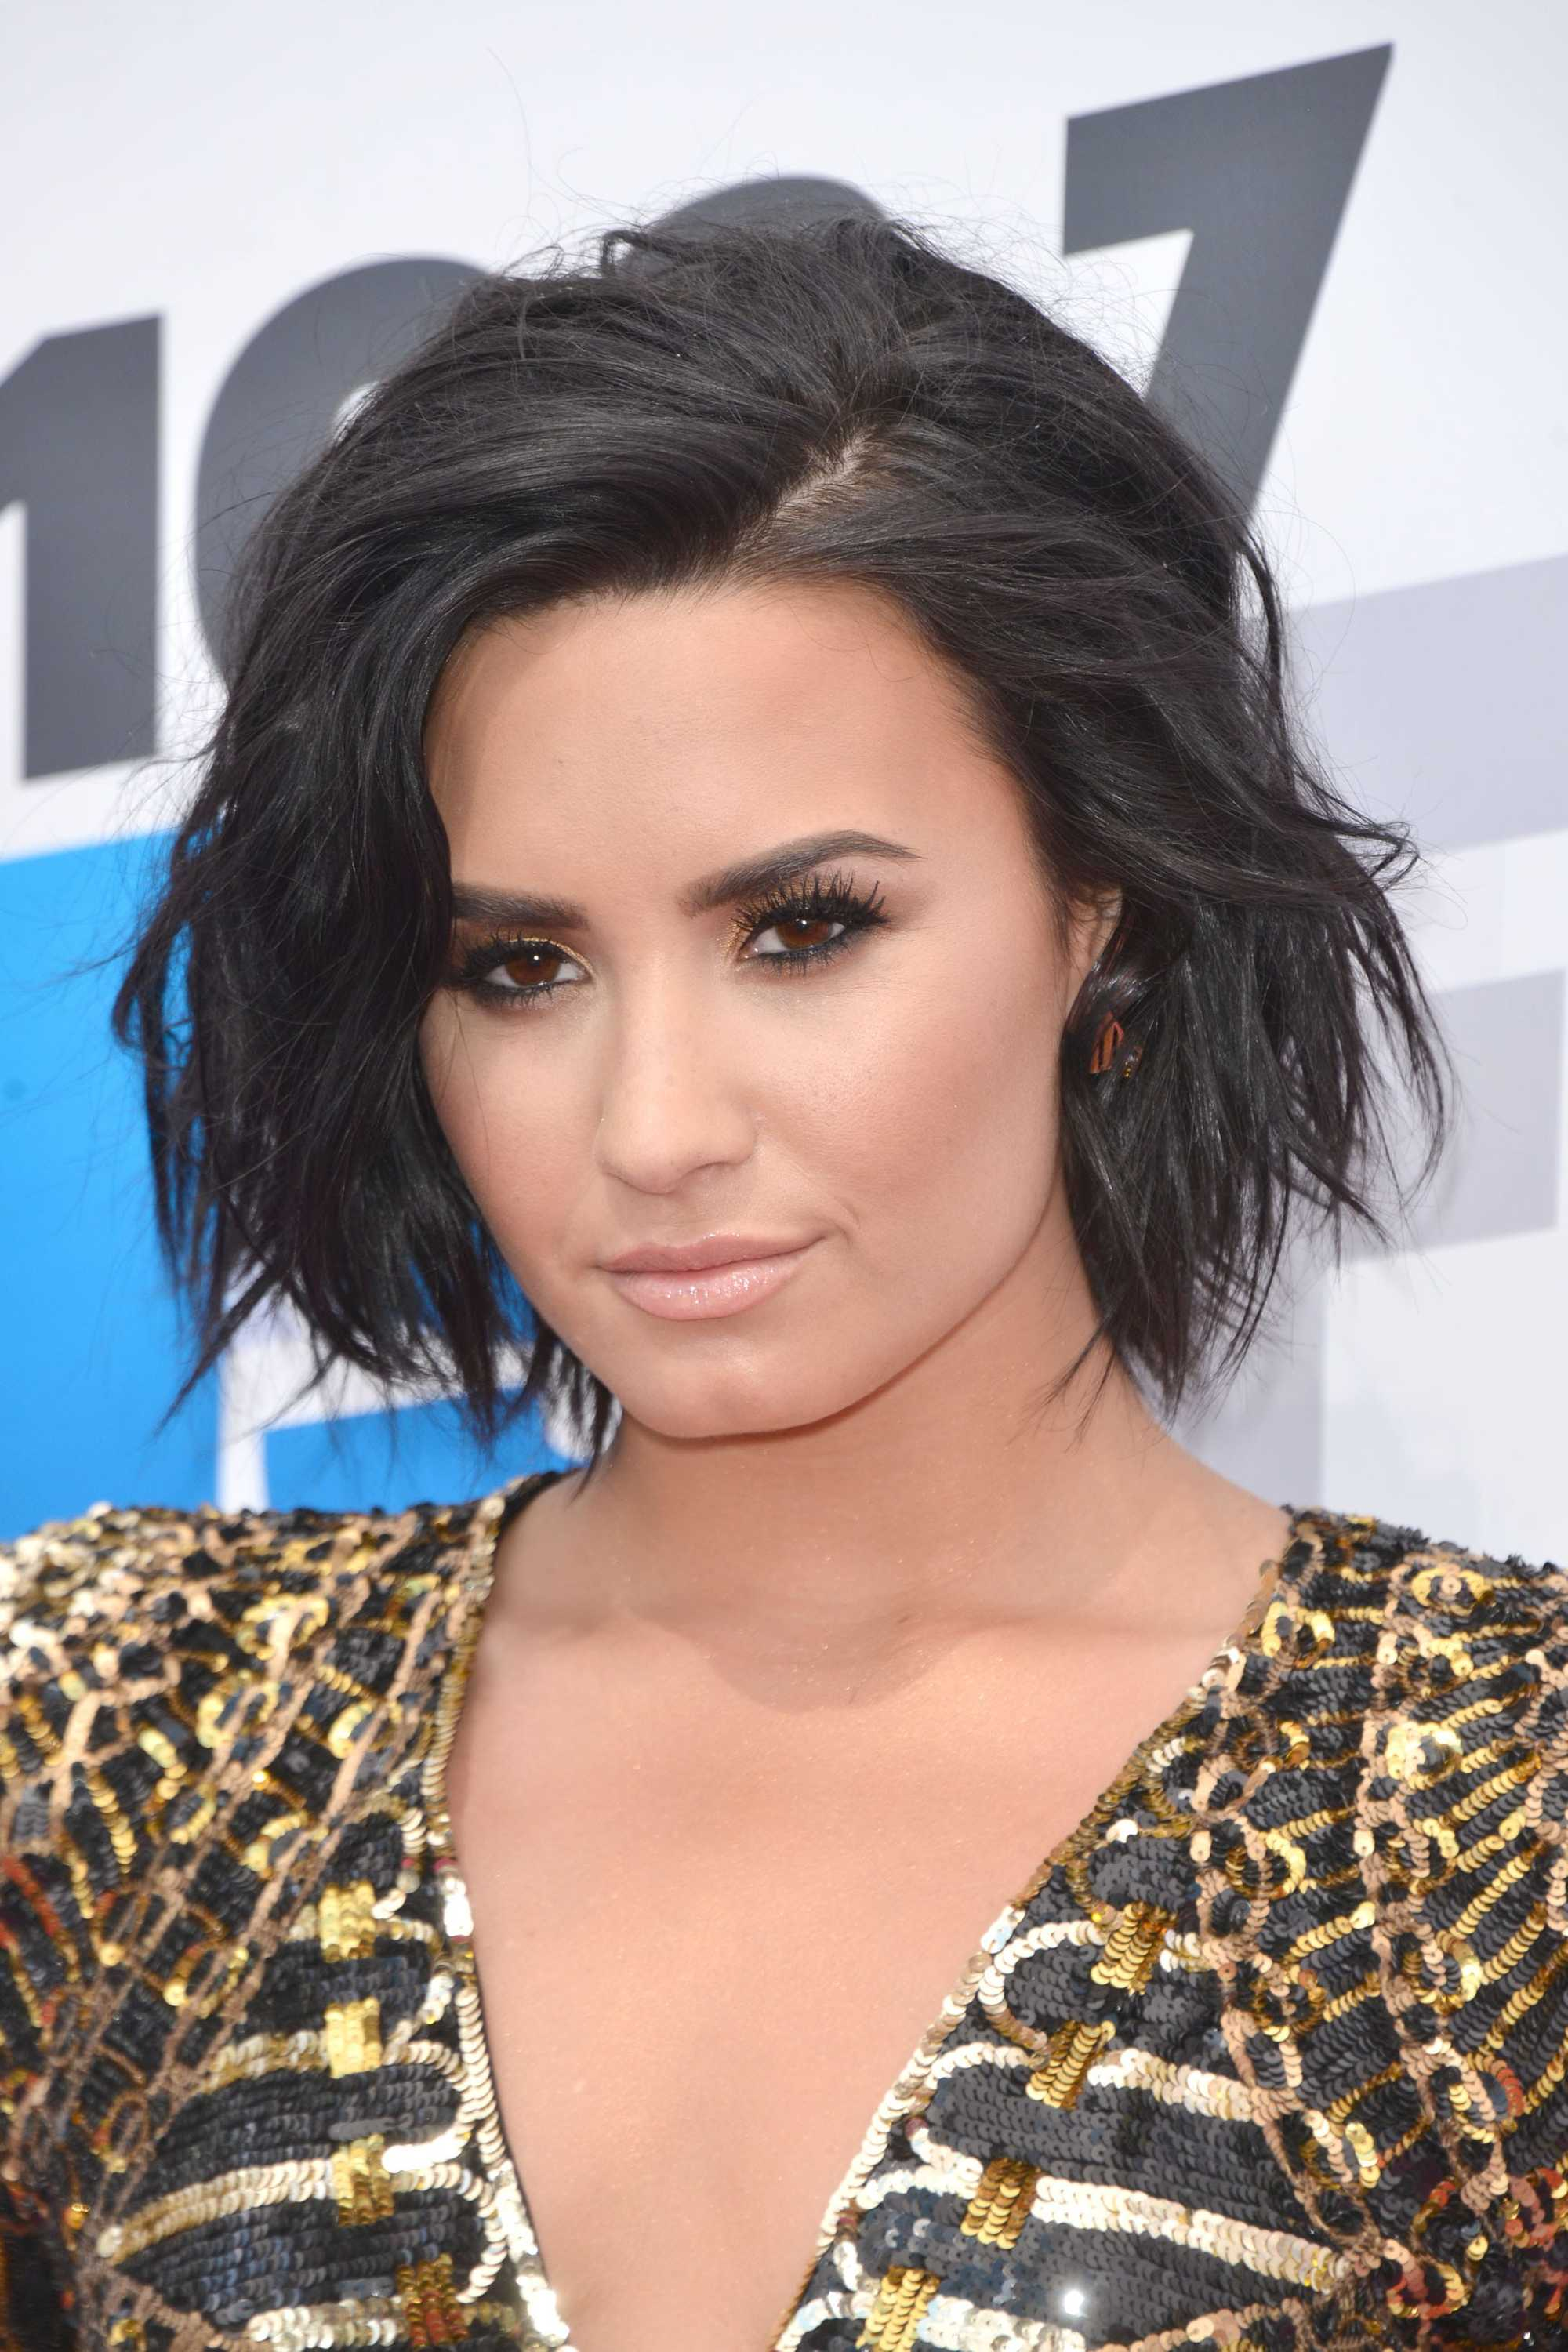 Demi Lovato with textured bob wearing gold outfit